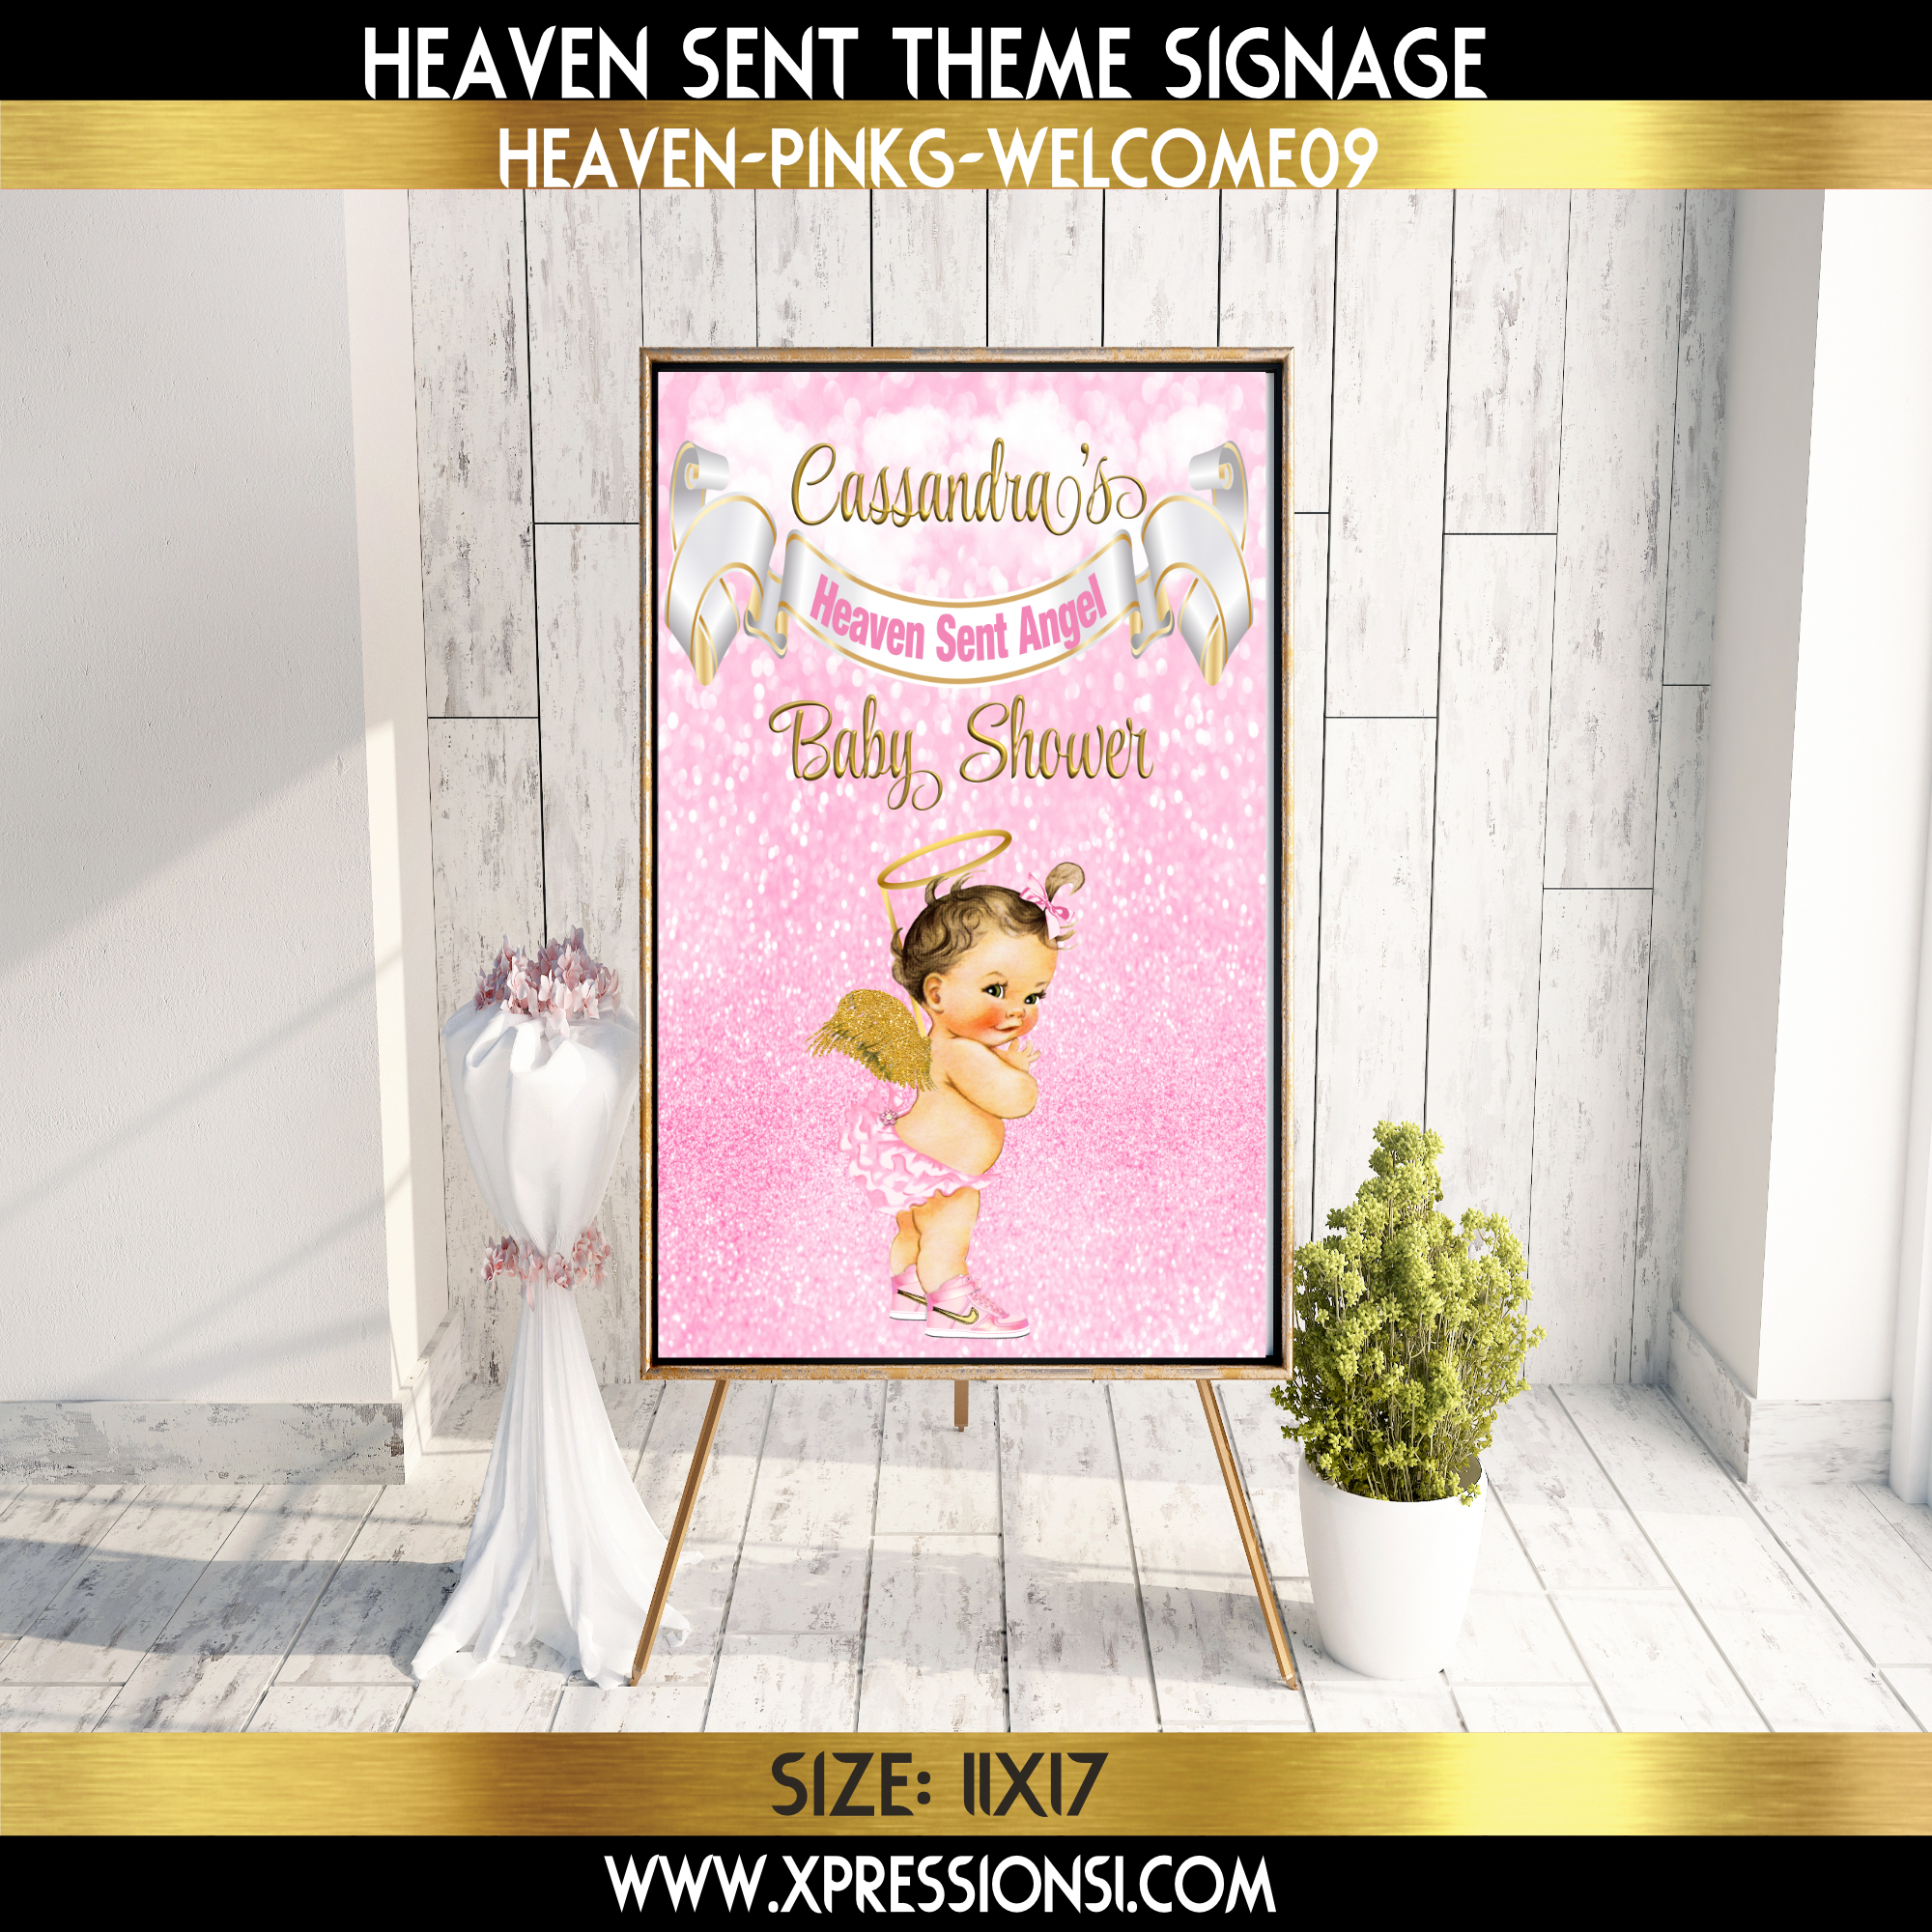 Angel in Sneakers Welcome Sign